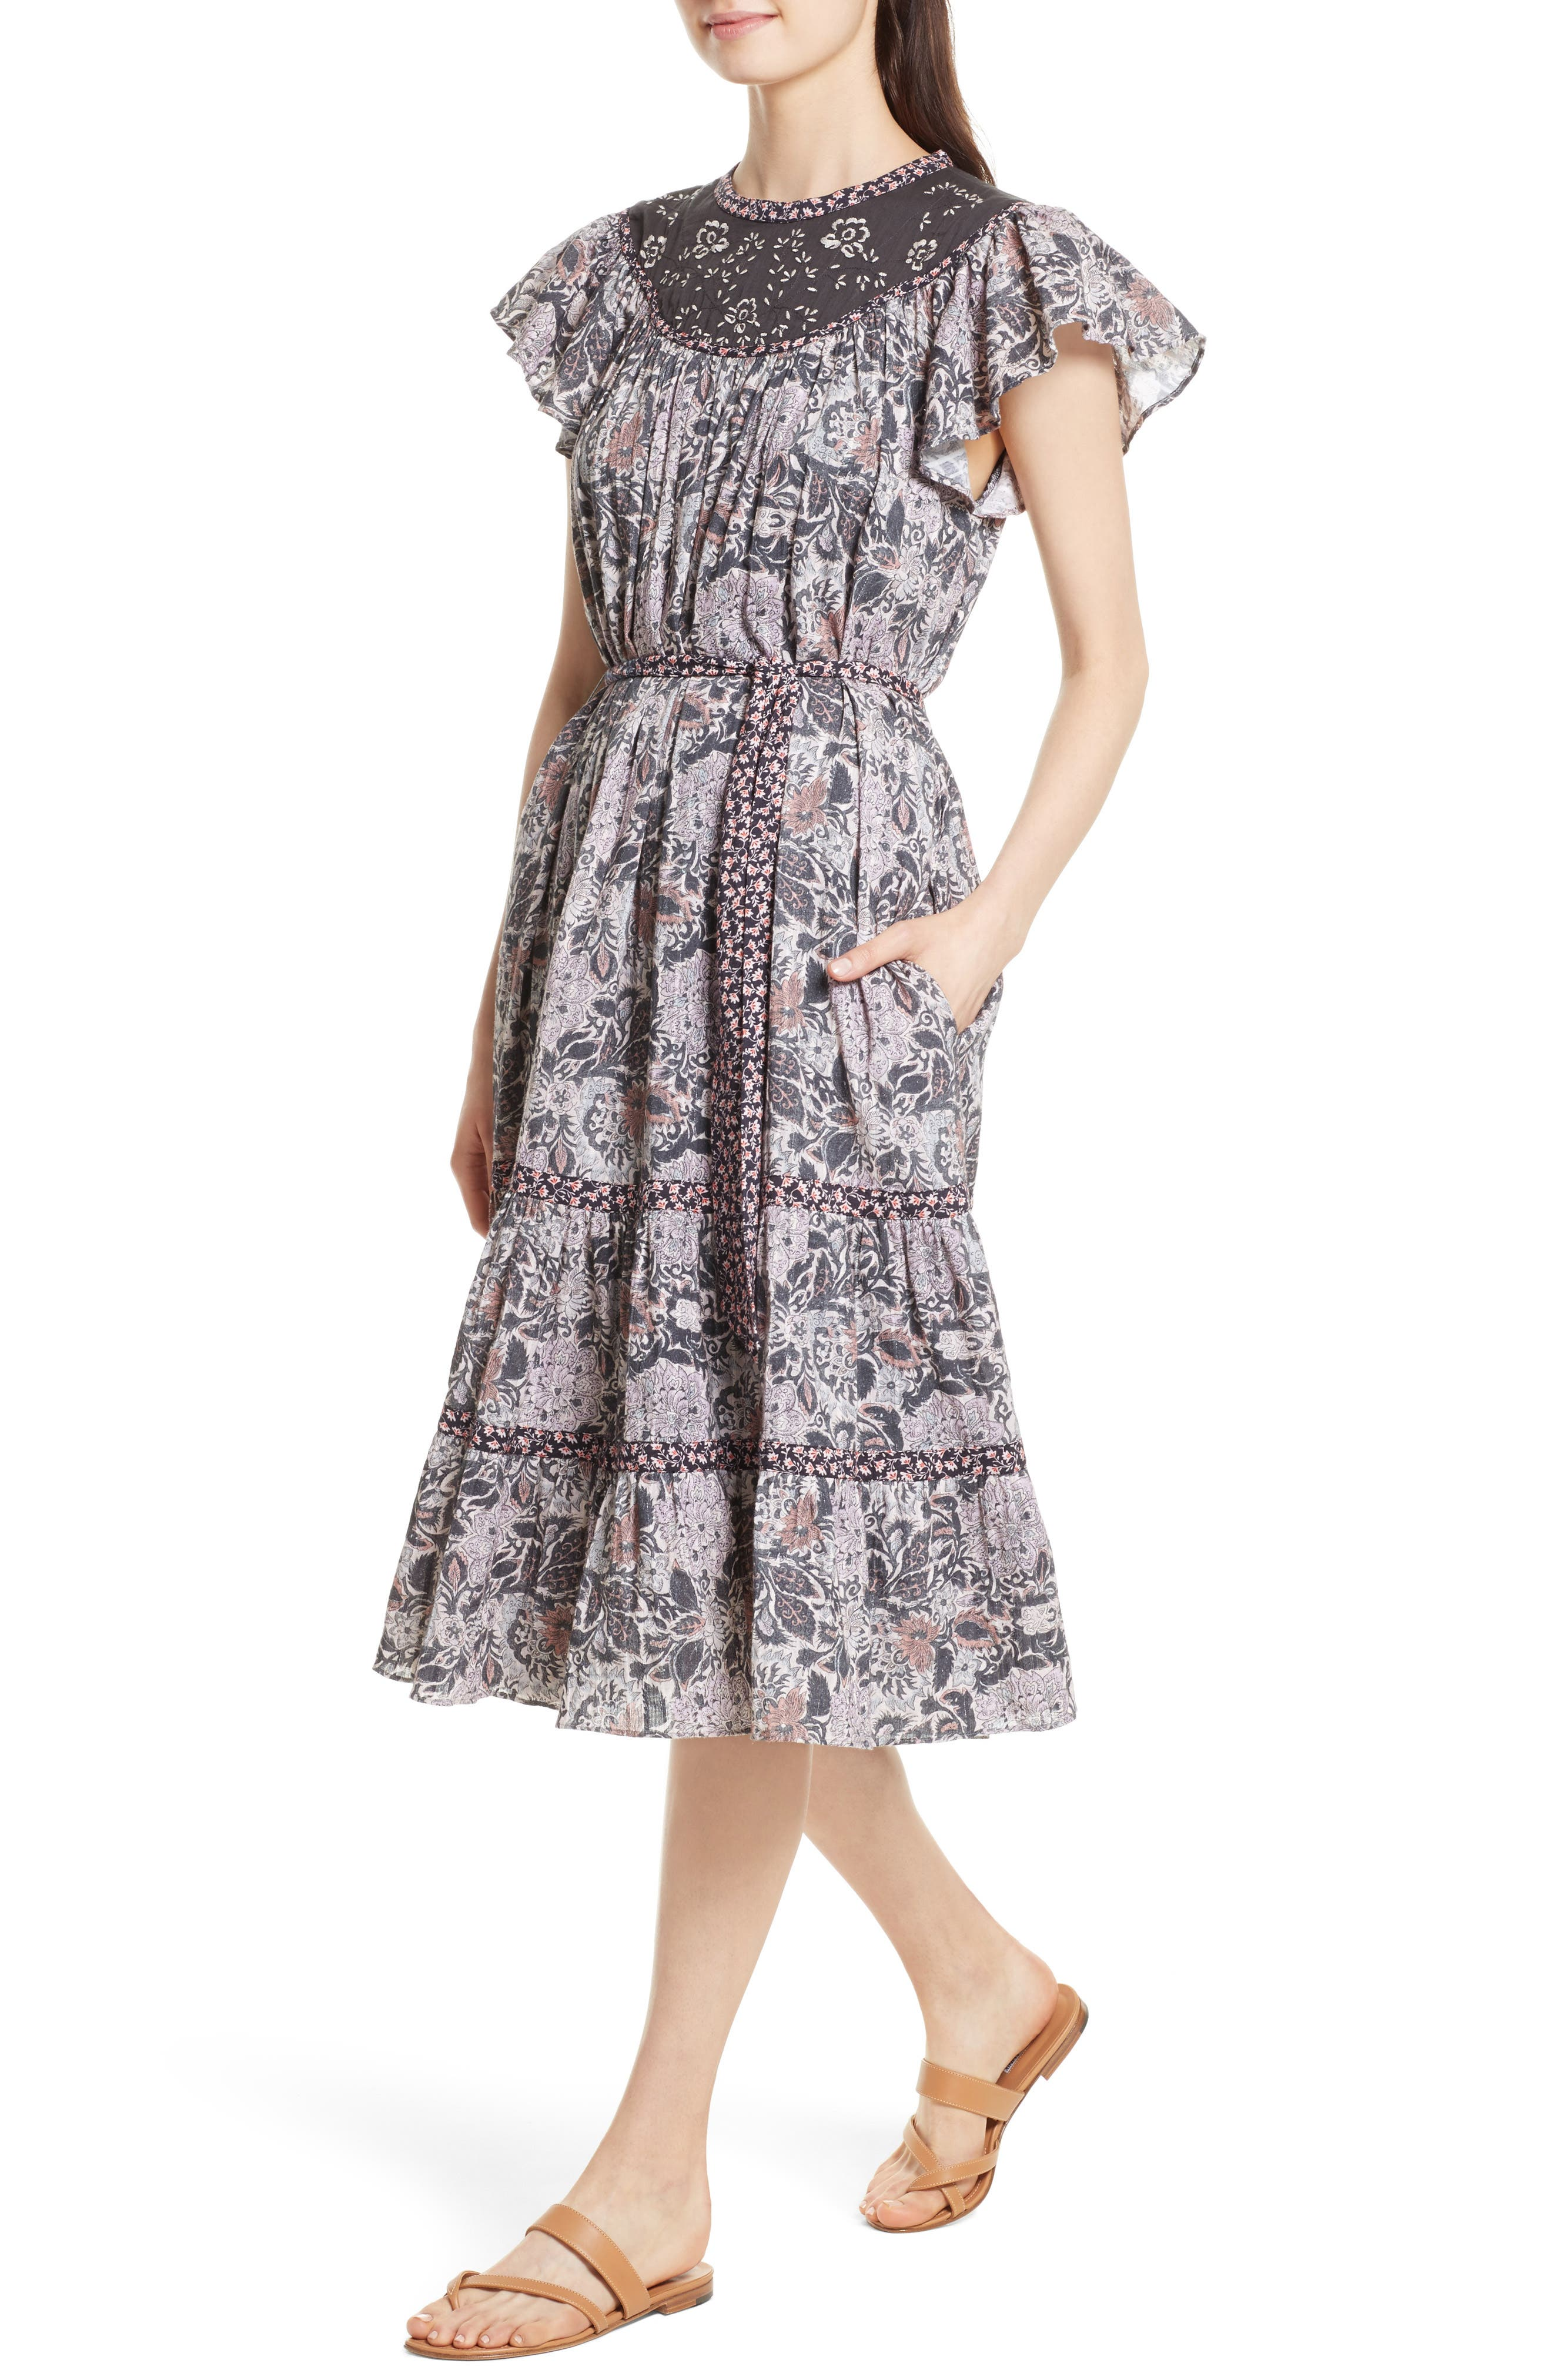 Indochine Embroidered Floral Dress,                             Alternate thumbnail 4, color,                             017